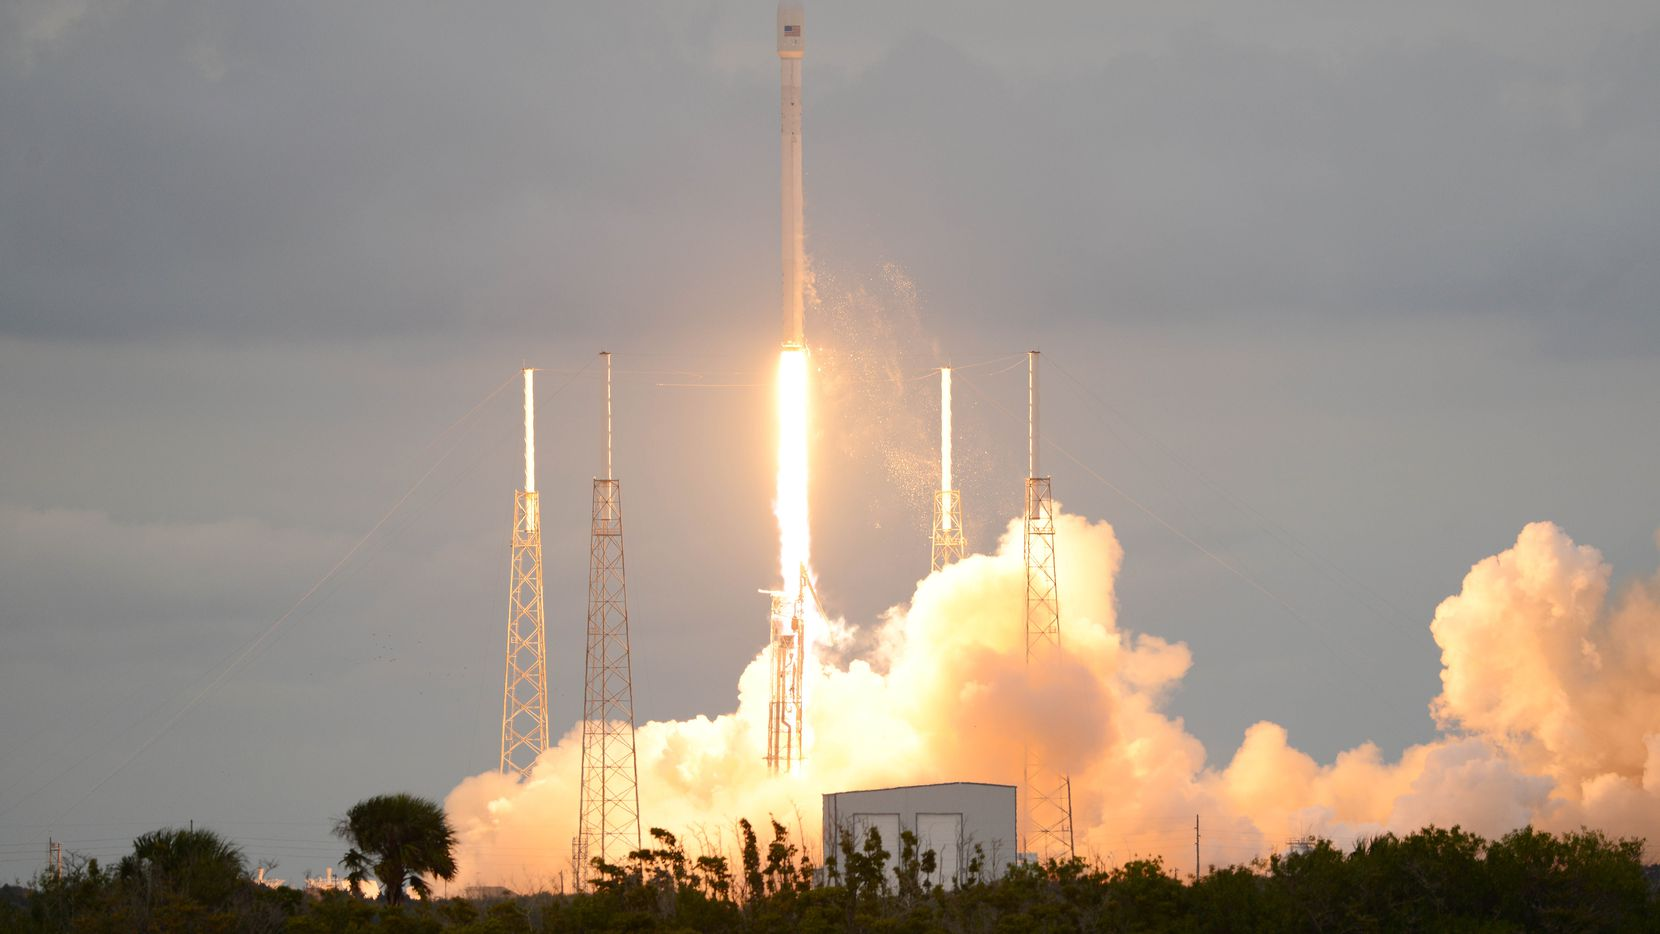 A SpaceX Falcon 9 rocket lifts off from Cape Canaveral Air Force Station Monday, Jan. 6, 2014.  The rocket is carrying the THAICOM 6 telecommunications satellite.  (AP Photo/Florida Today, Craig Bailey)  NO SALES